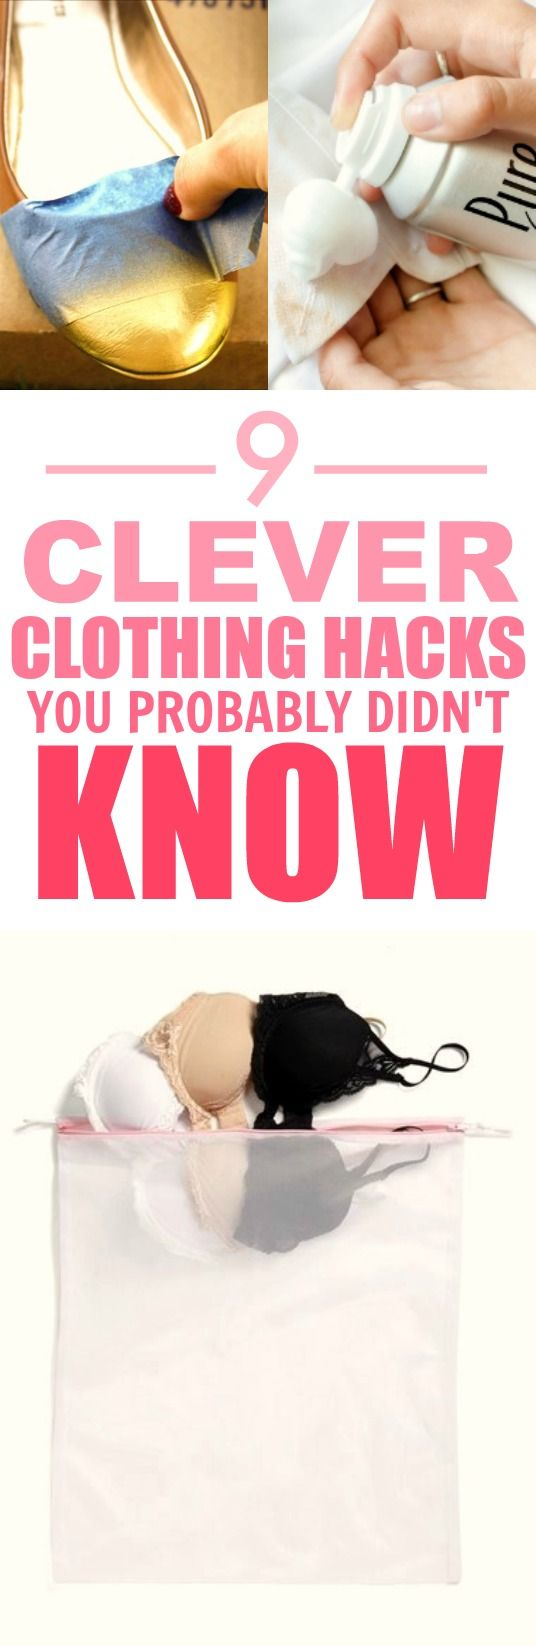 These 9 clothing hacks and tips are THE BEST! I'm so happy I found this GREAT post! Now I can save money and keep my favorite outfits! I'm SO pinning for later!